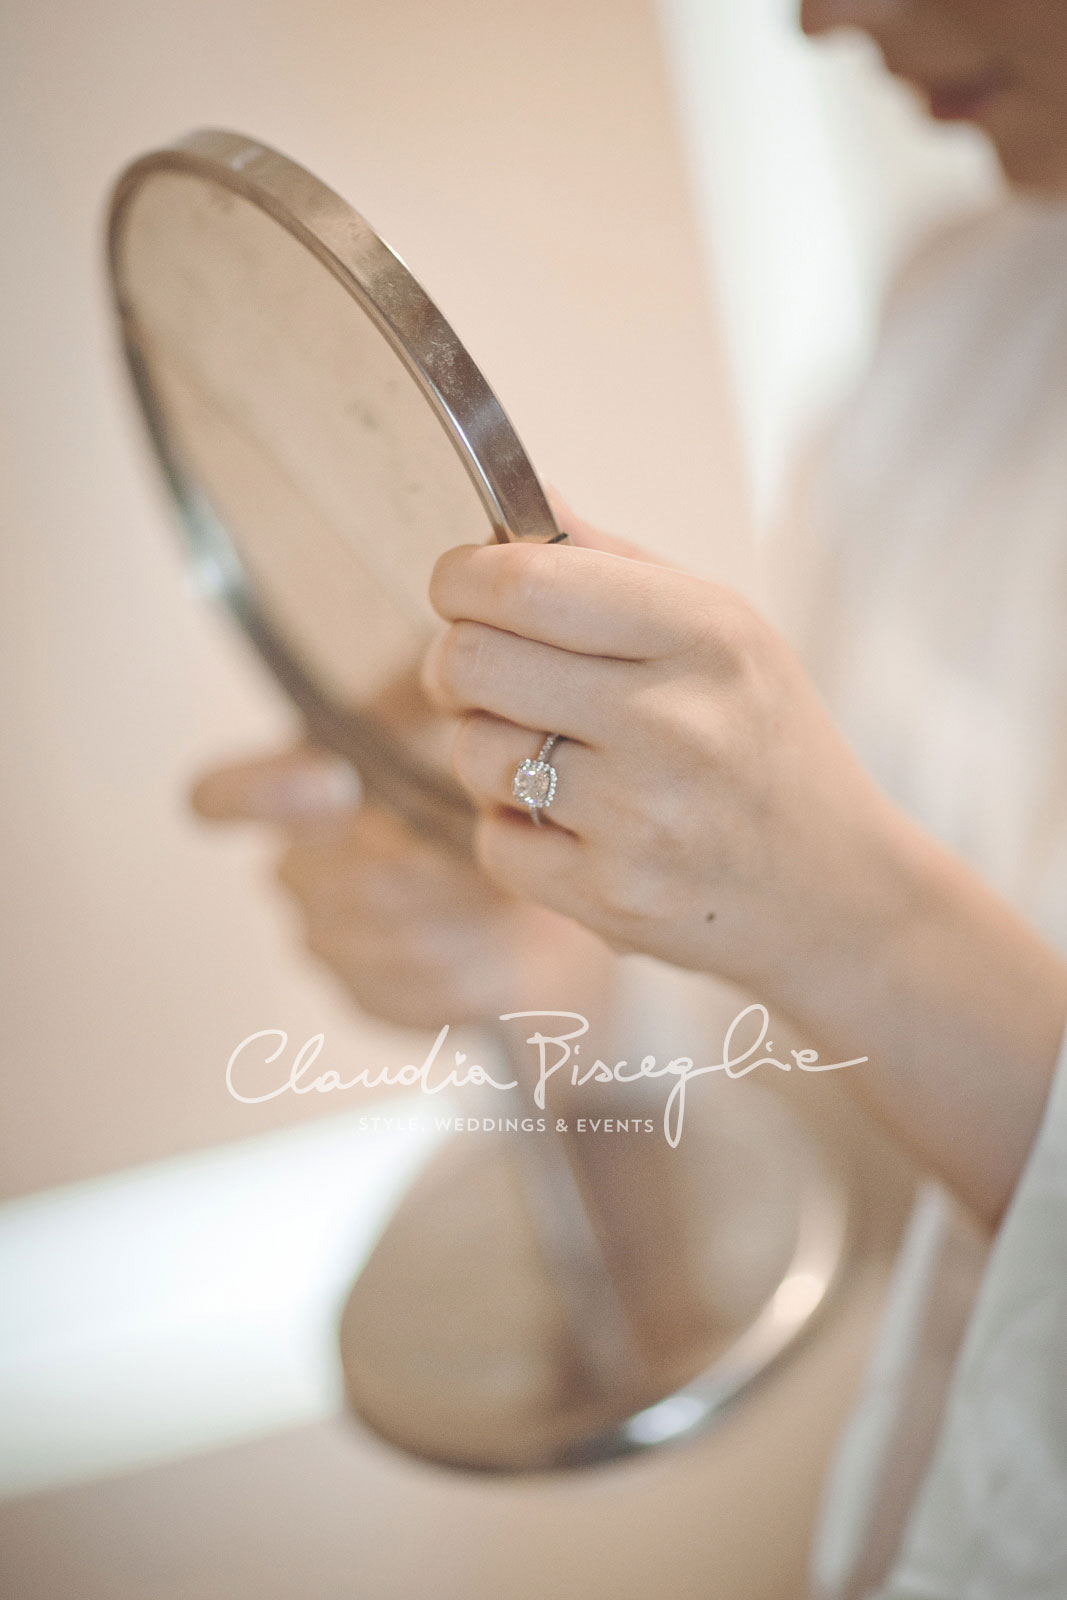 2Mirror-details-italianwedding-bride-elegance-white-ing-diamond-style